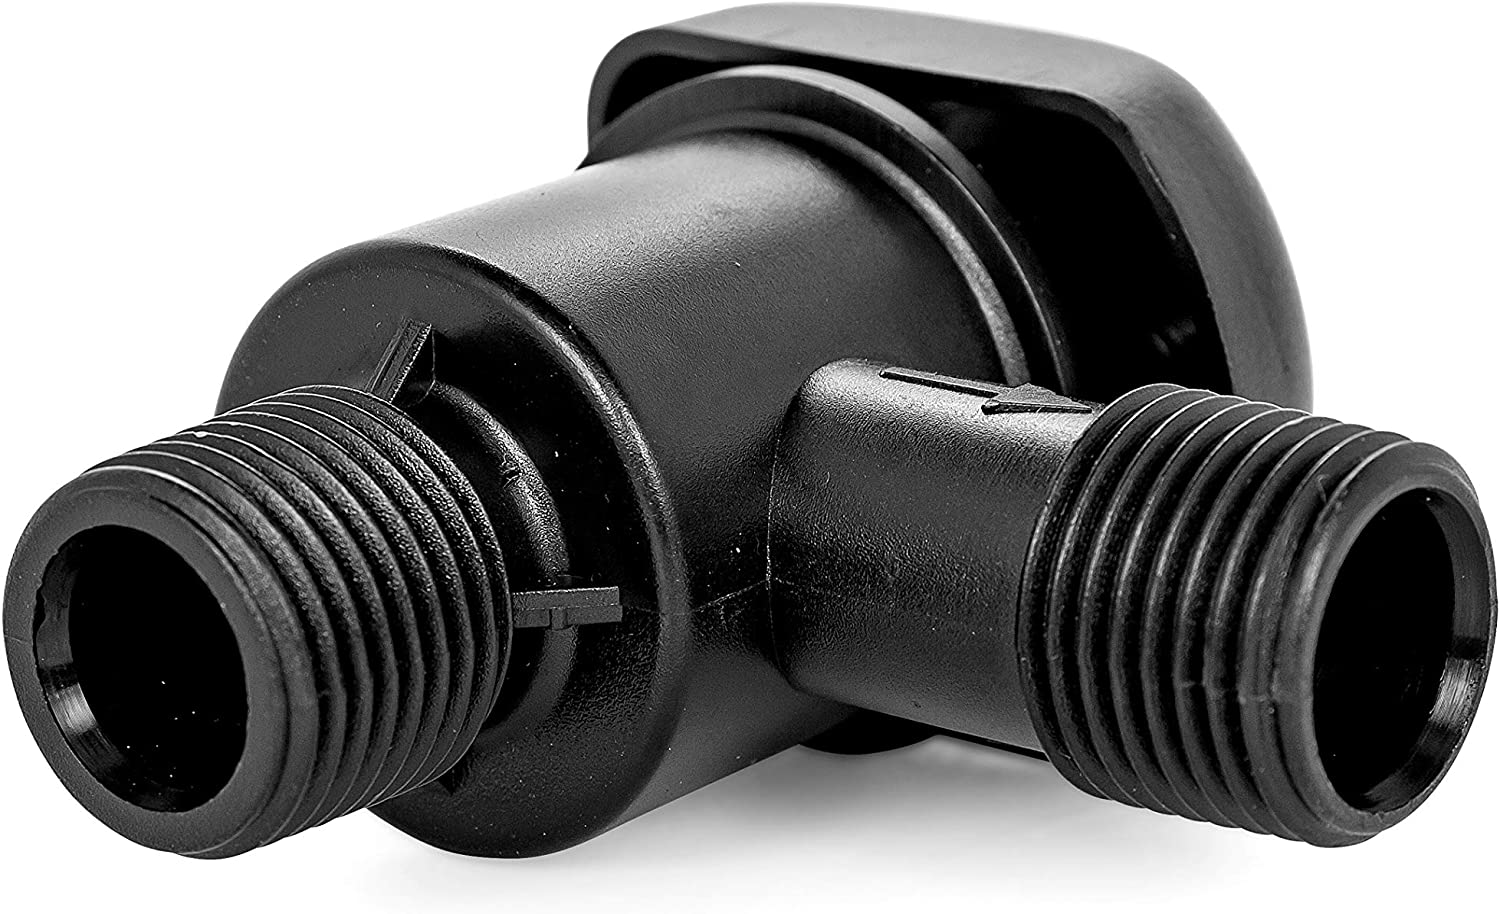 Camco Vacuum Breaker Assembly-Protects Your Water Supply from Harmful Pollutants and Contaminates (40395)